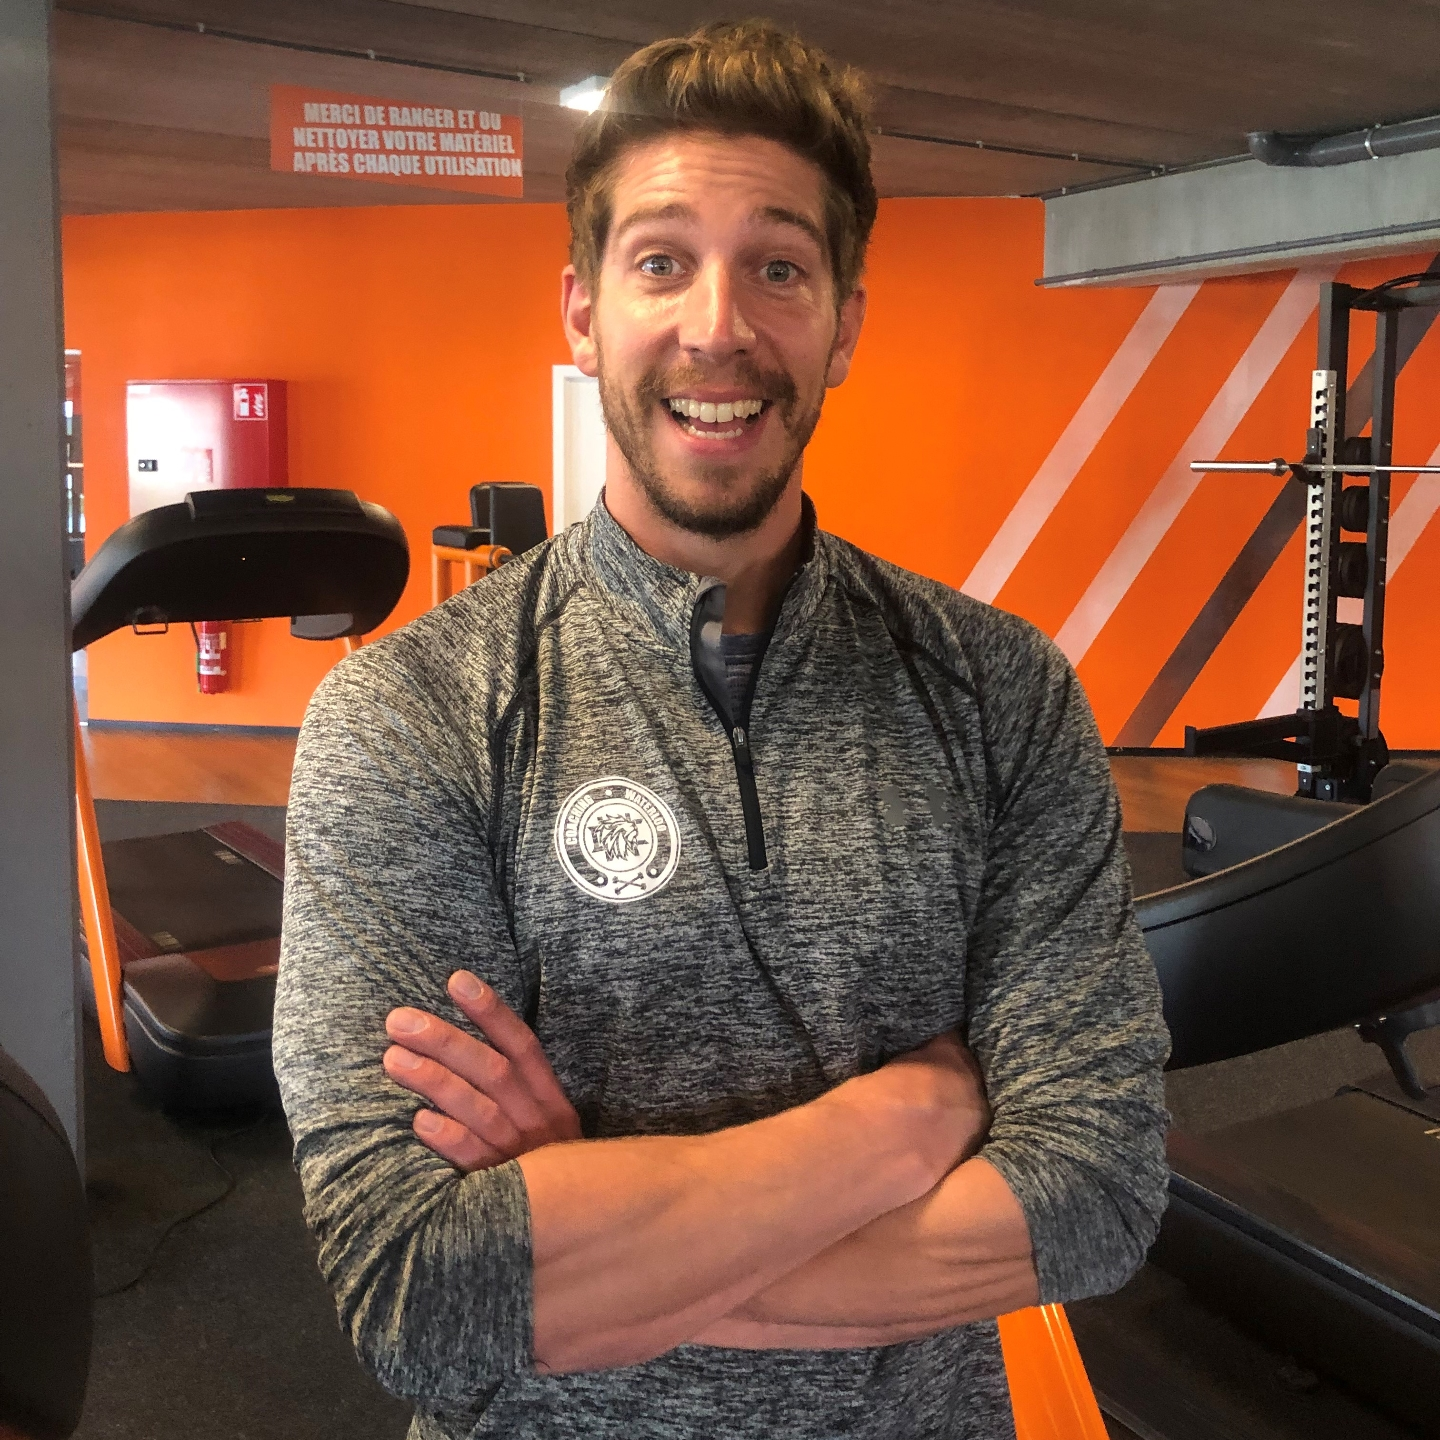 Fitnessclub Waterloo Chaussee de Bruxelles - photo 13